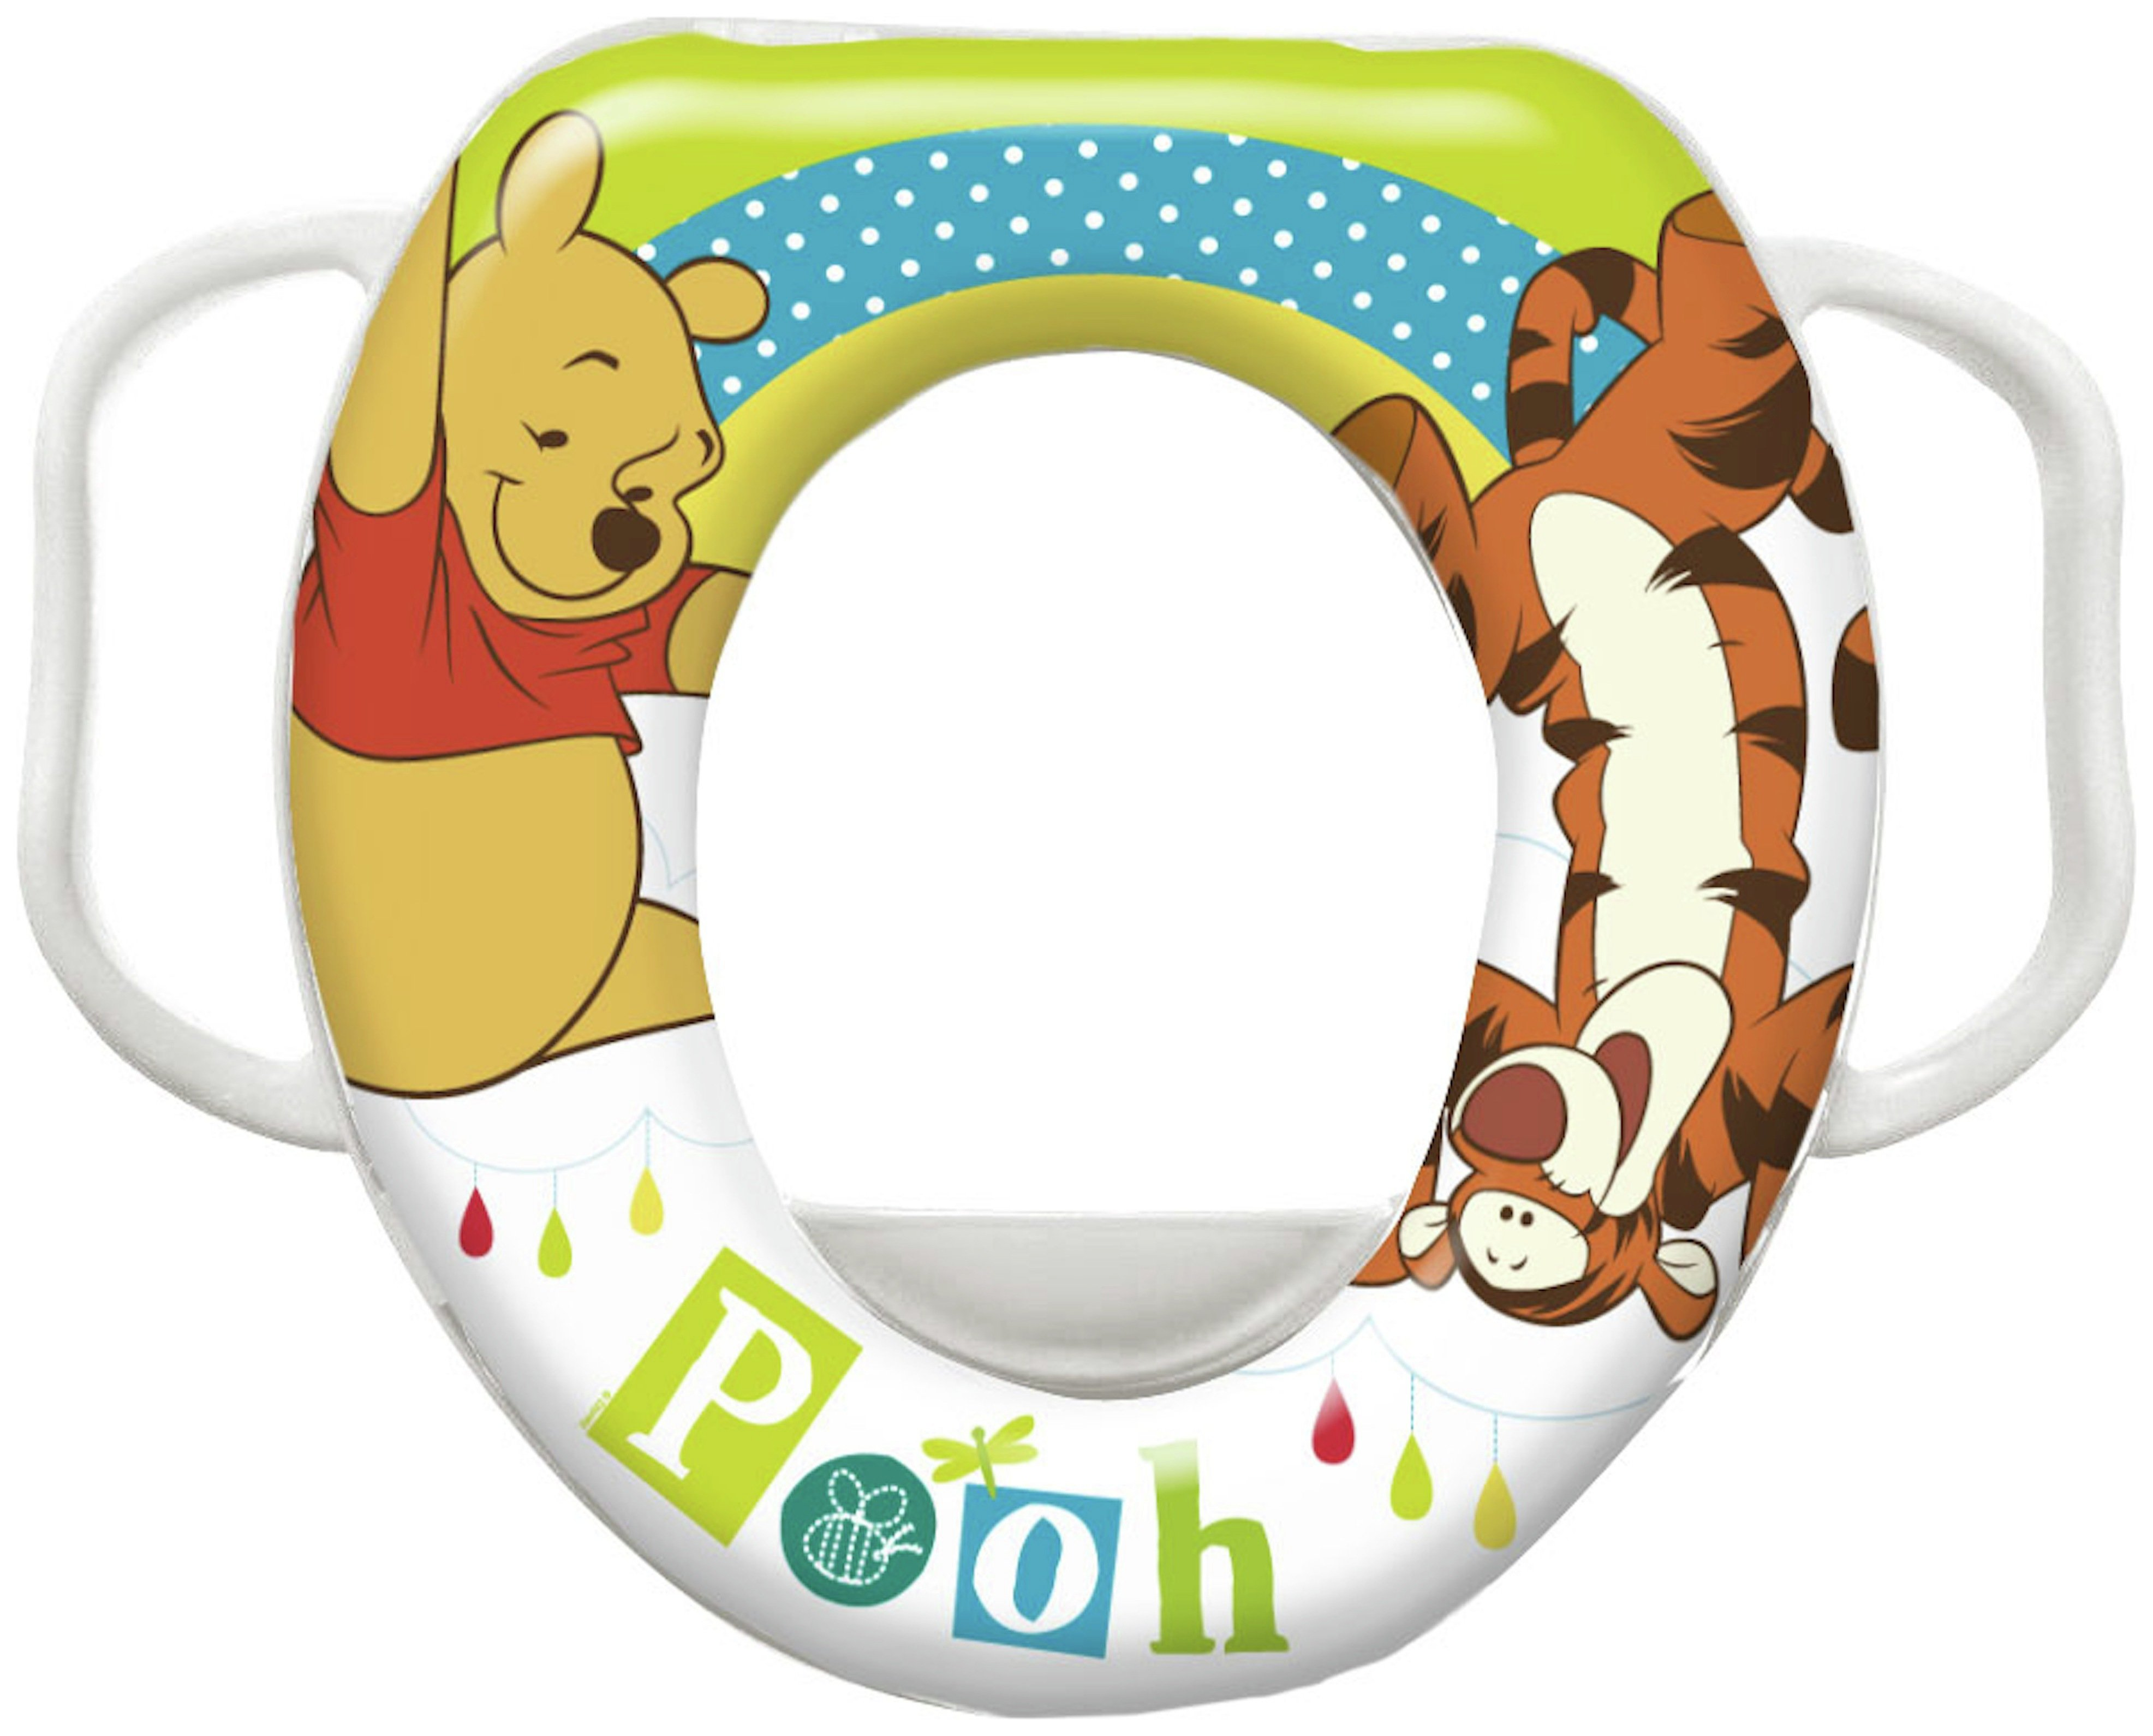 Disney Winnie the Pooh Soft Padded Toilet Seat